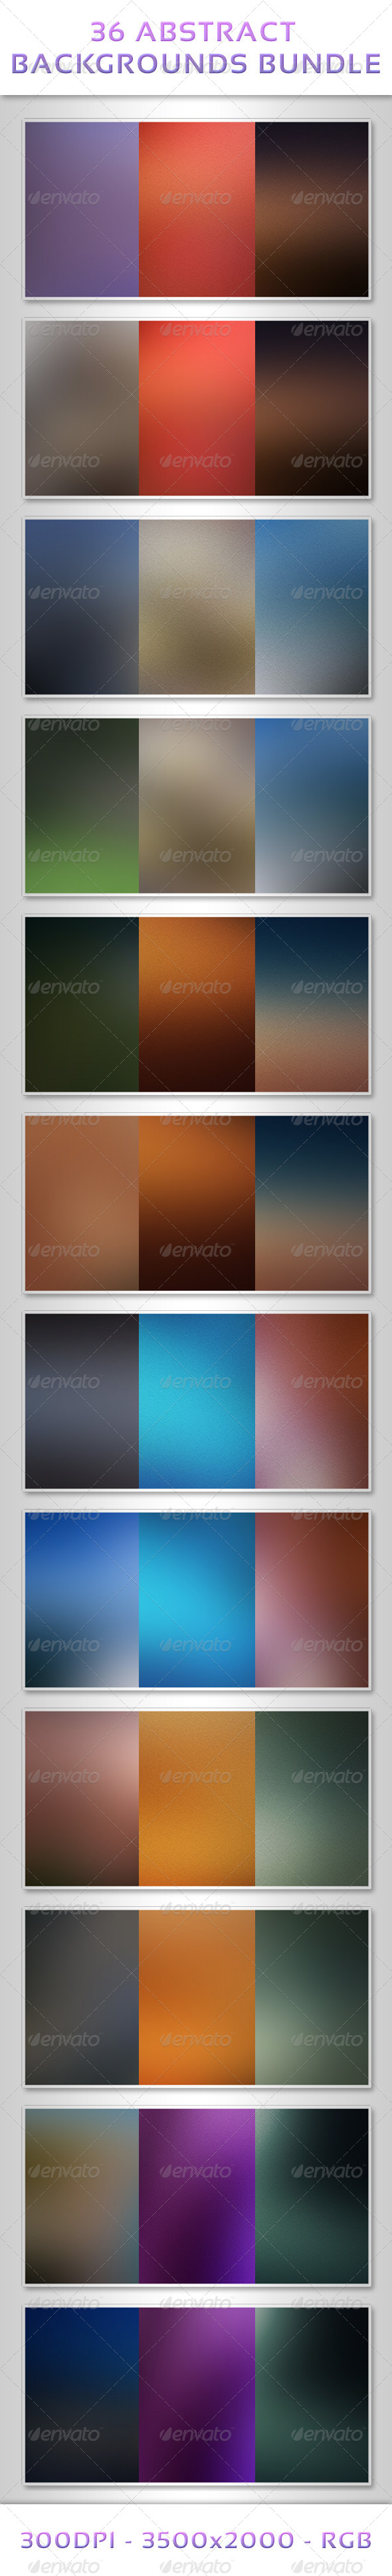 36 Abstract Backgrounds Bundle - Abstract Backgrounds